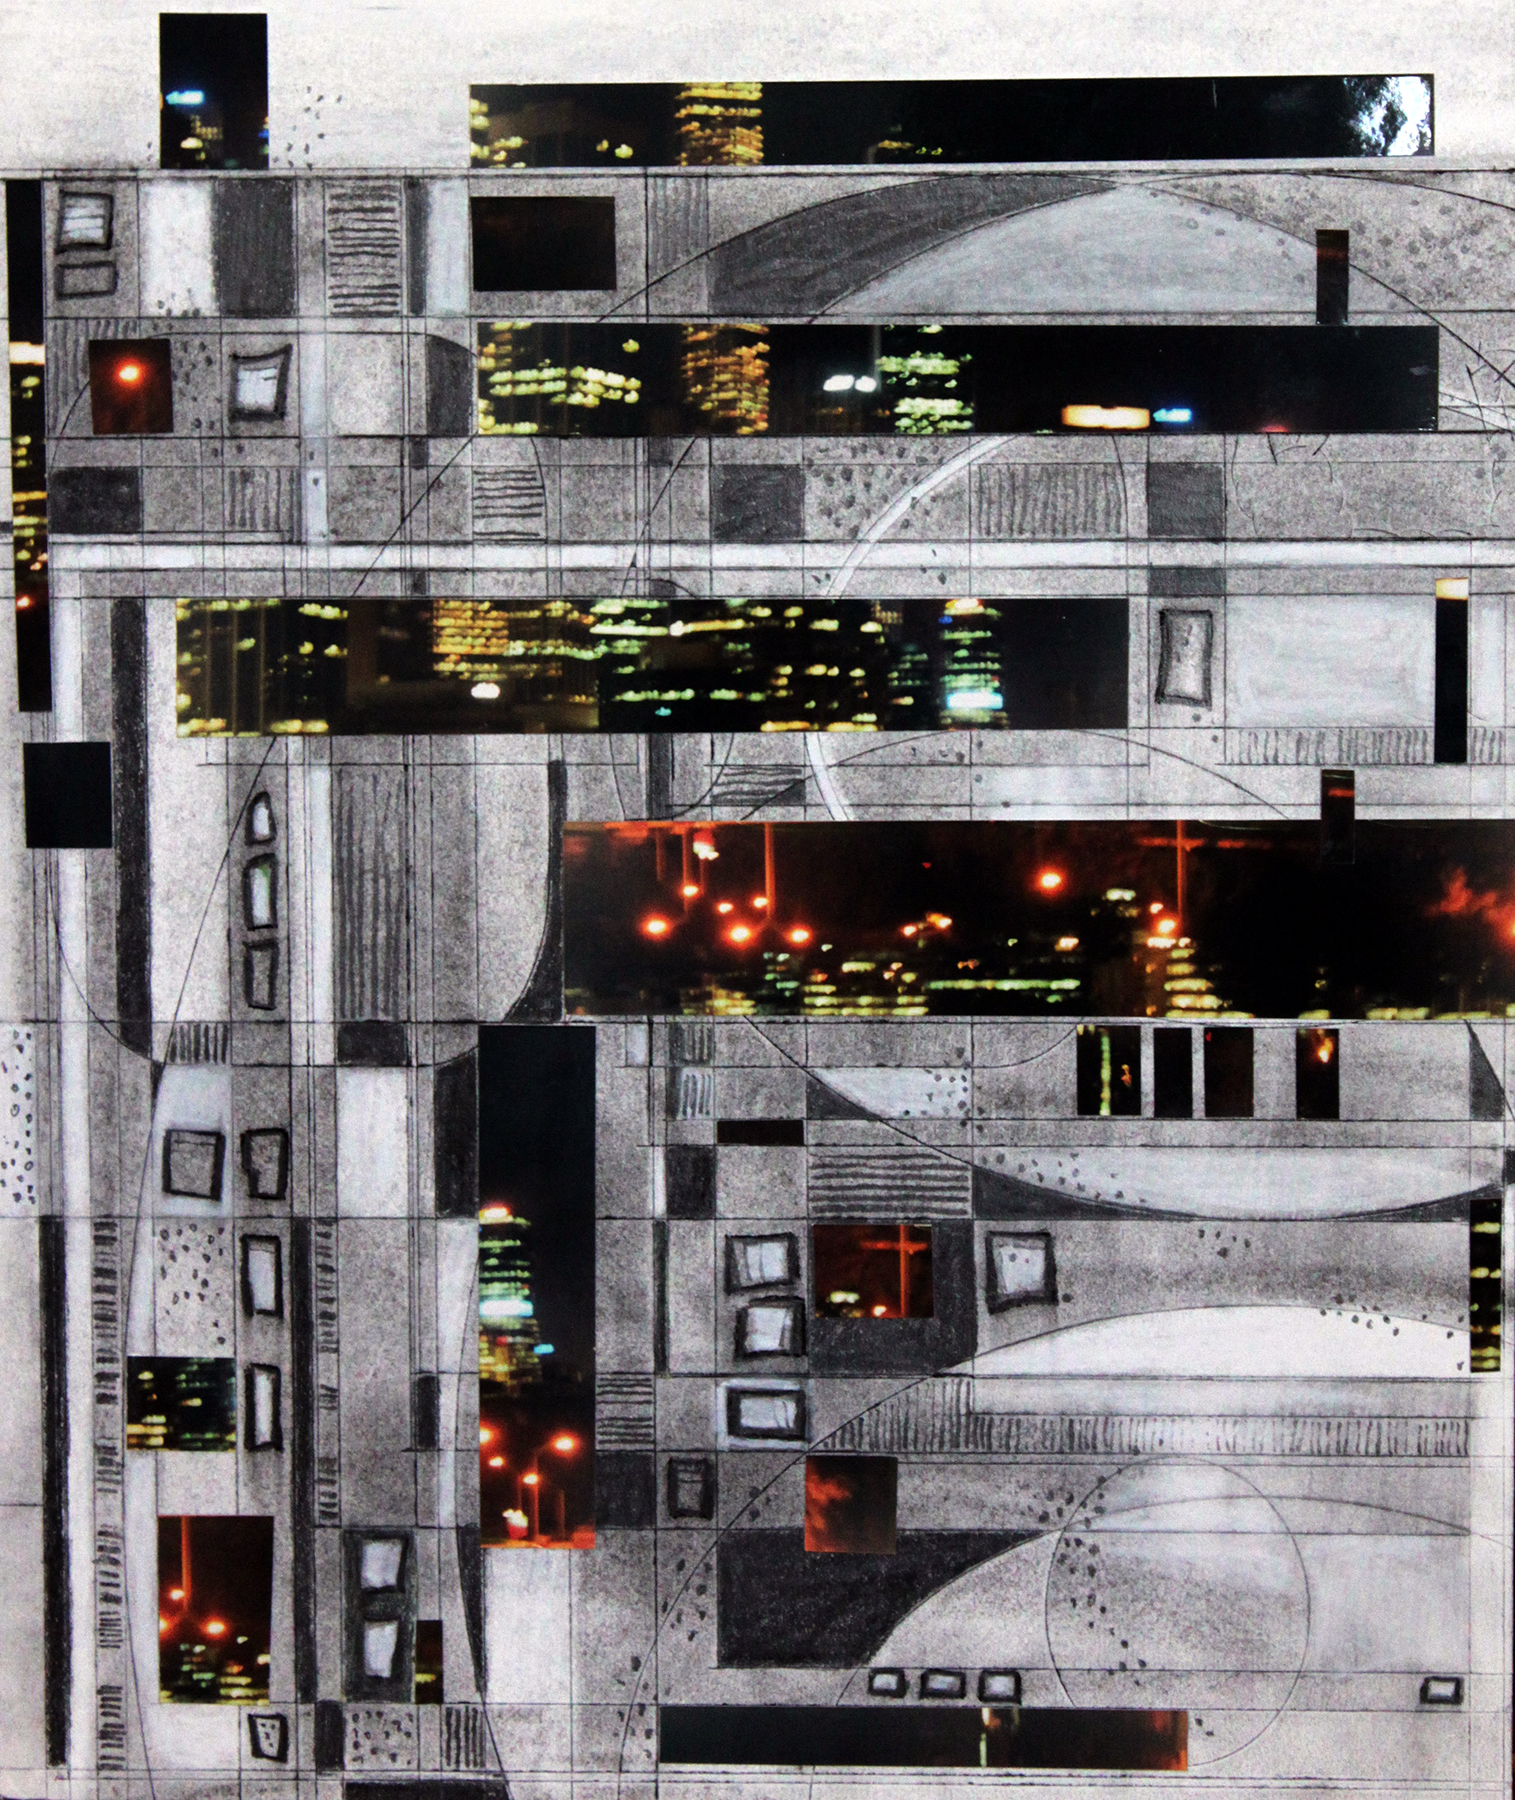 TITLE: A night in the city  MEDIUM: Collage and drawing DIMENSIONS: H51 x W44cm  FRAMED